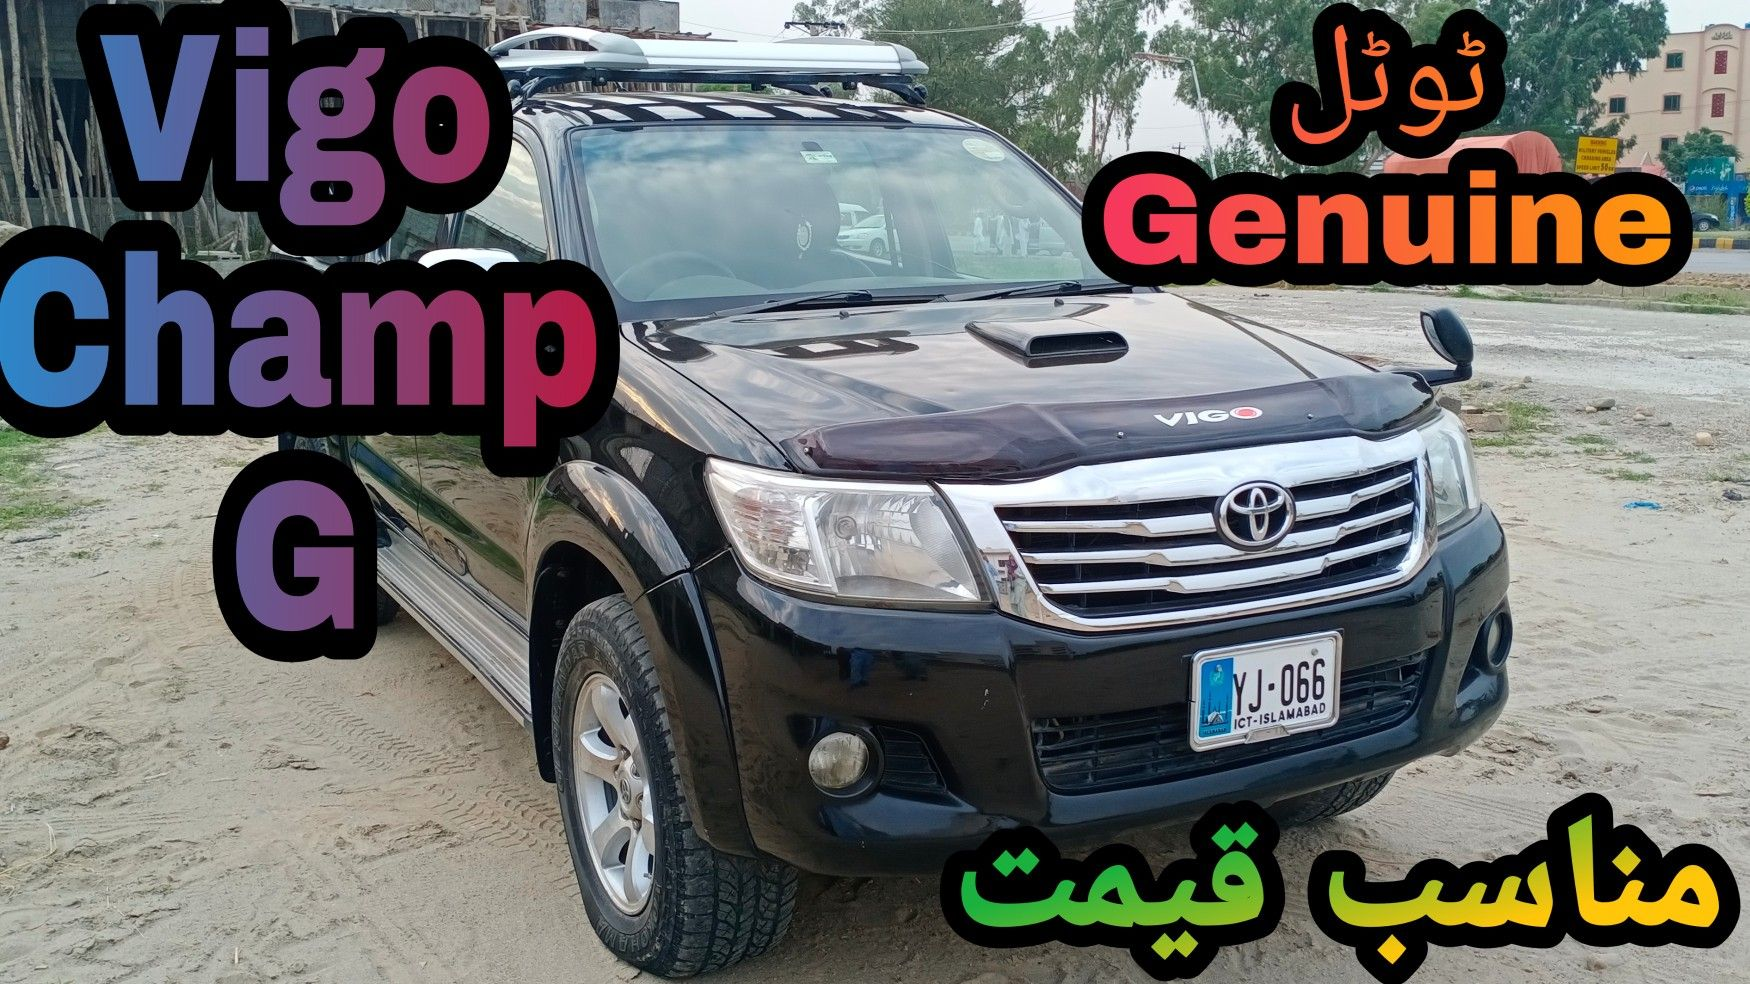 Toyota Hilux Vigo Champ G 4x4 2013 0verview Price For Sale Pakistan In 2020 Toyota Hilux Toyota Vigo